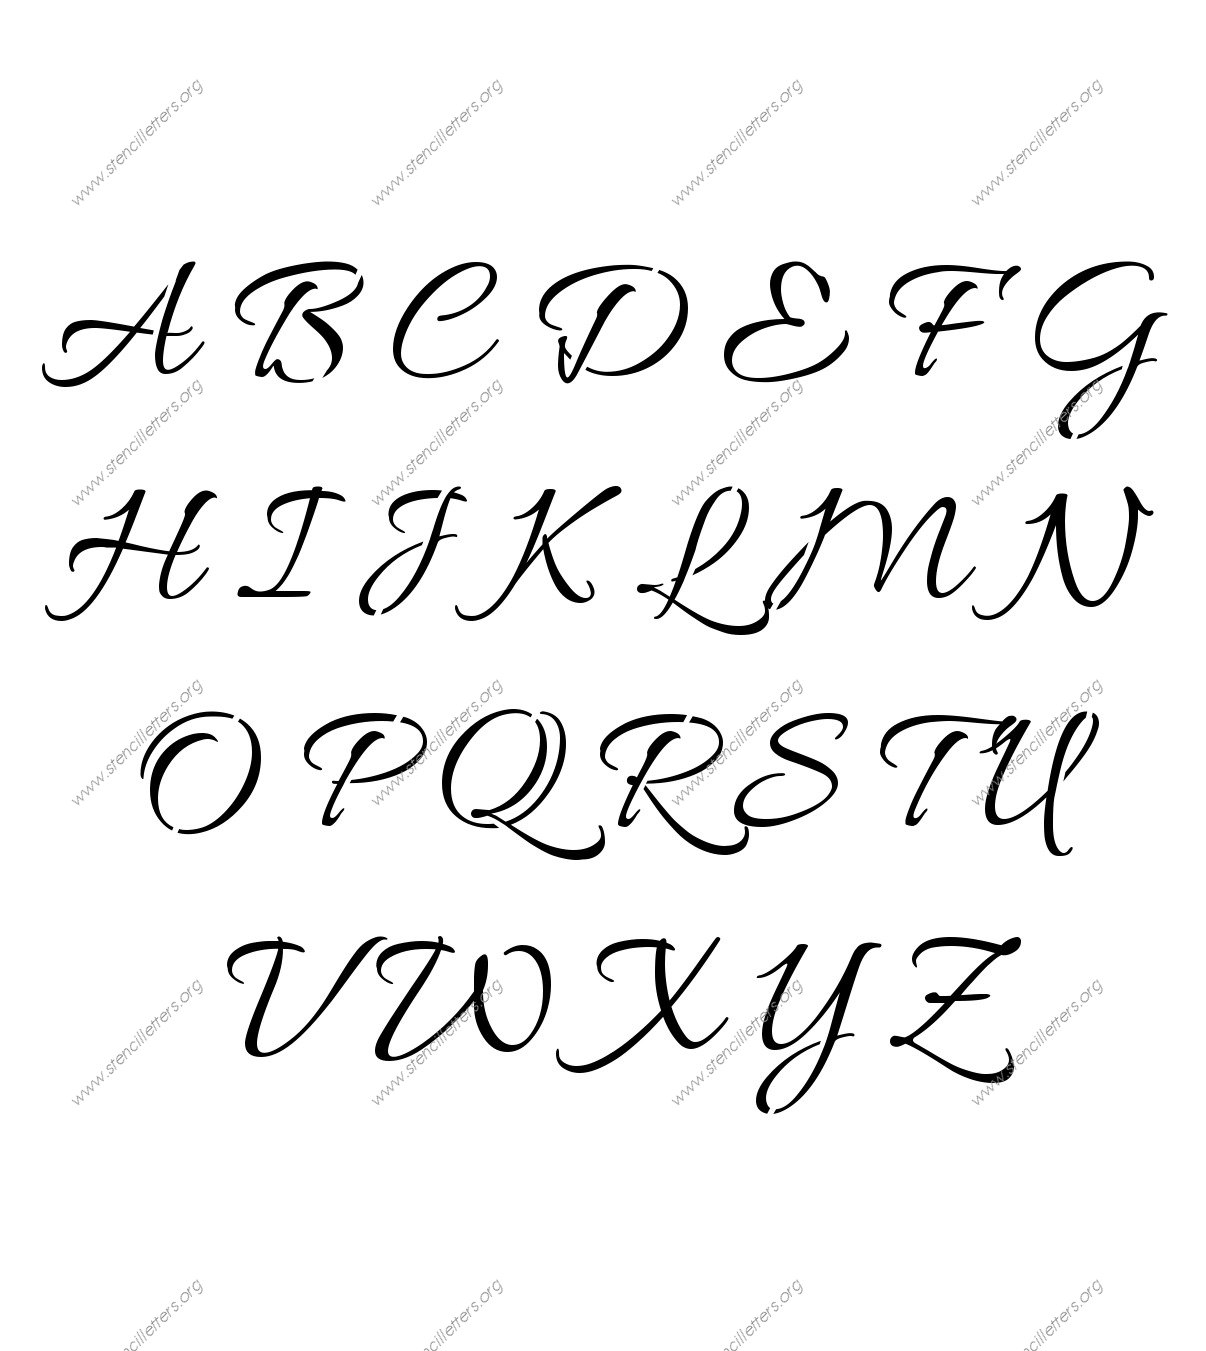 Worksheet Cursive Letter Z stylish cursive letter stencils numbers and custom made to order connected stencil set